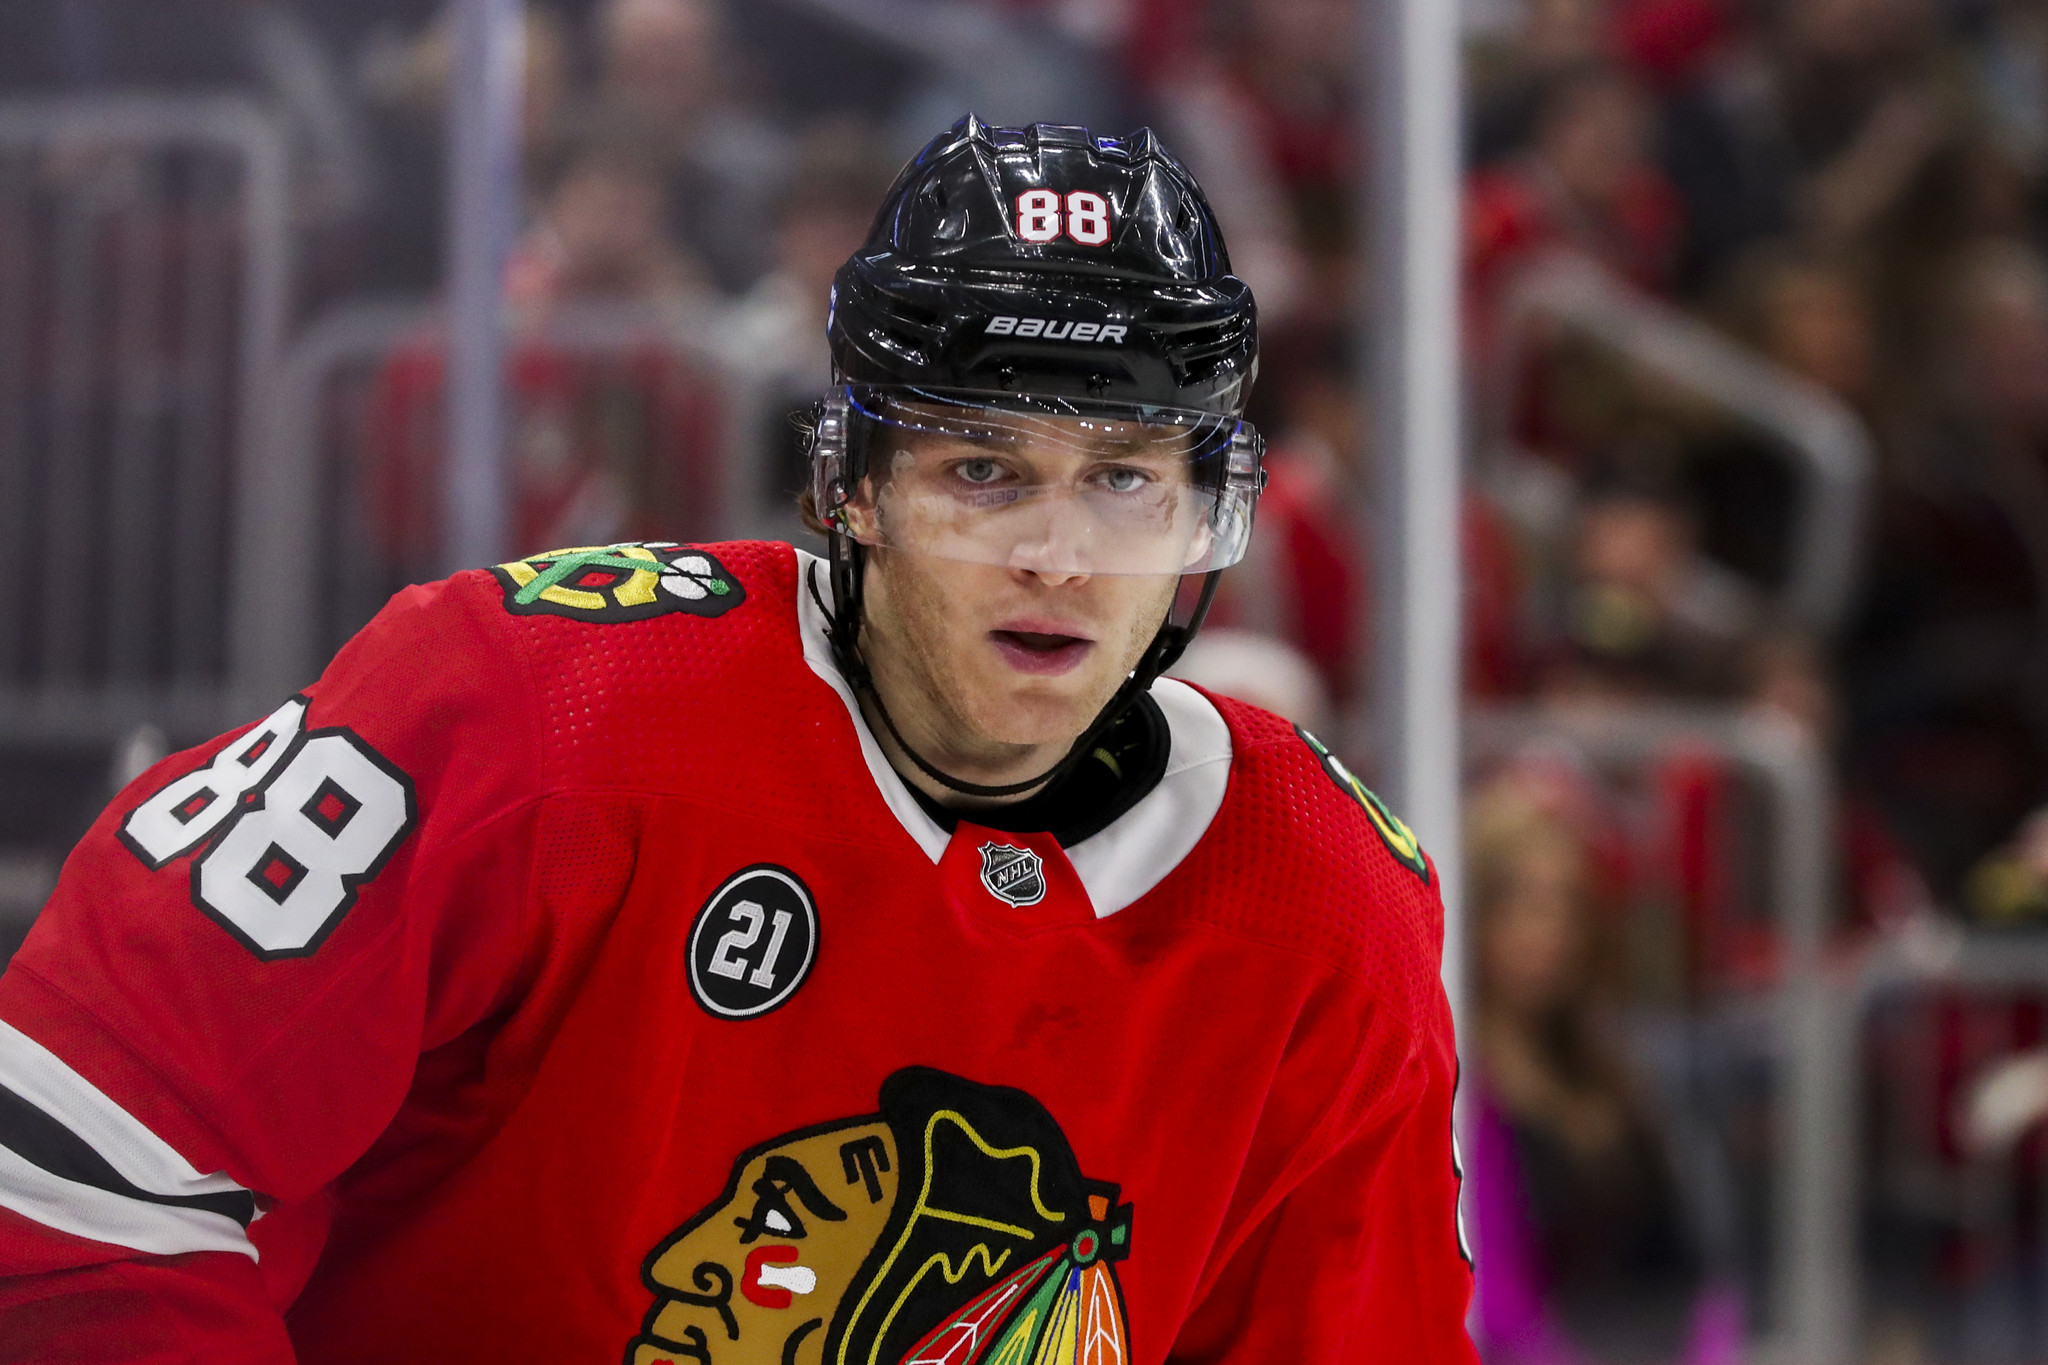 401959aed44 Blackhawks Q&A: Is Patrick Kane skating at top speed? What other ex-players  should get One More Shift? - Chicago Tribune